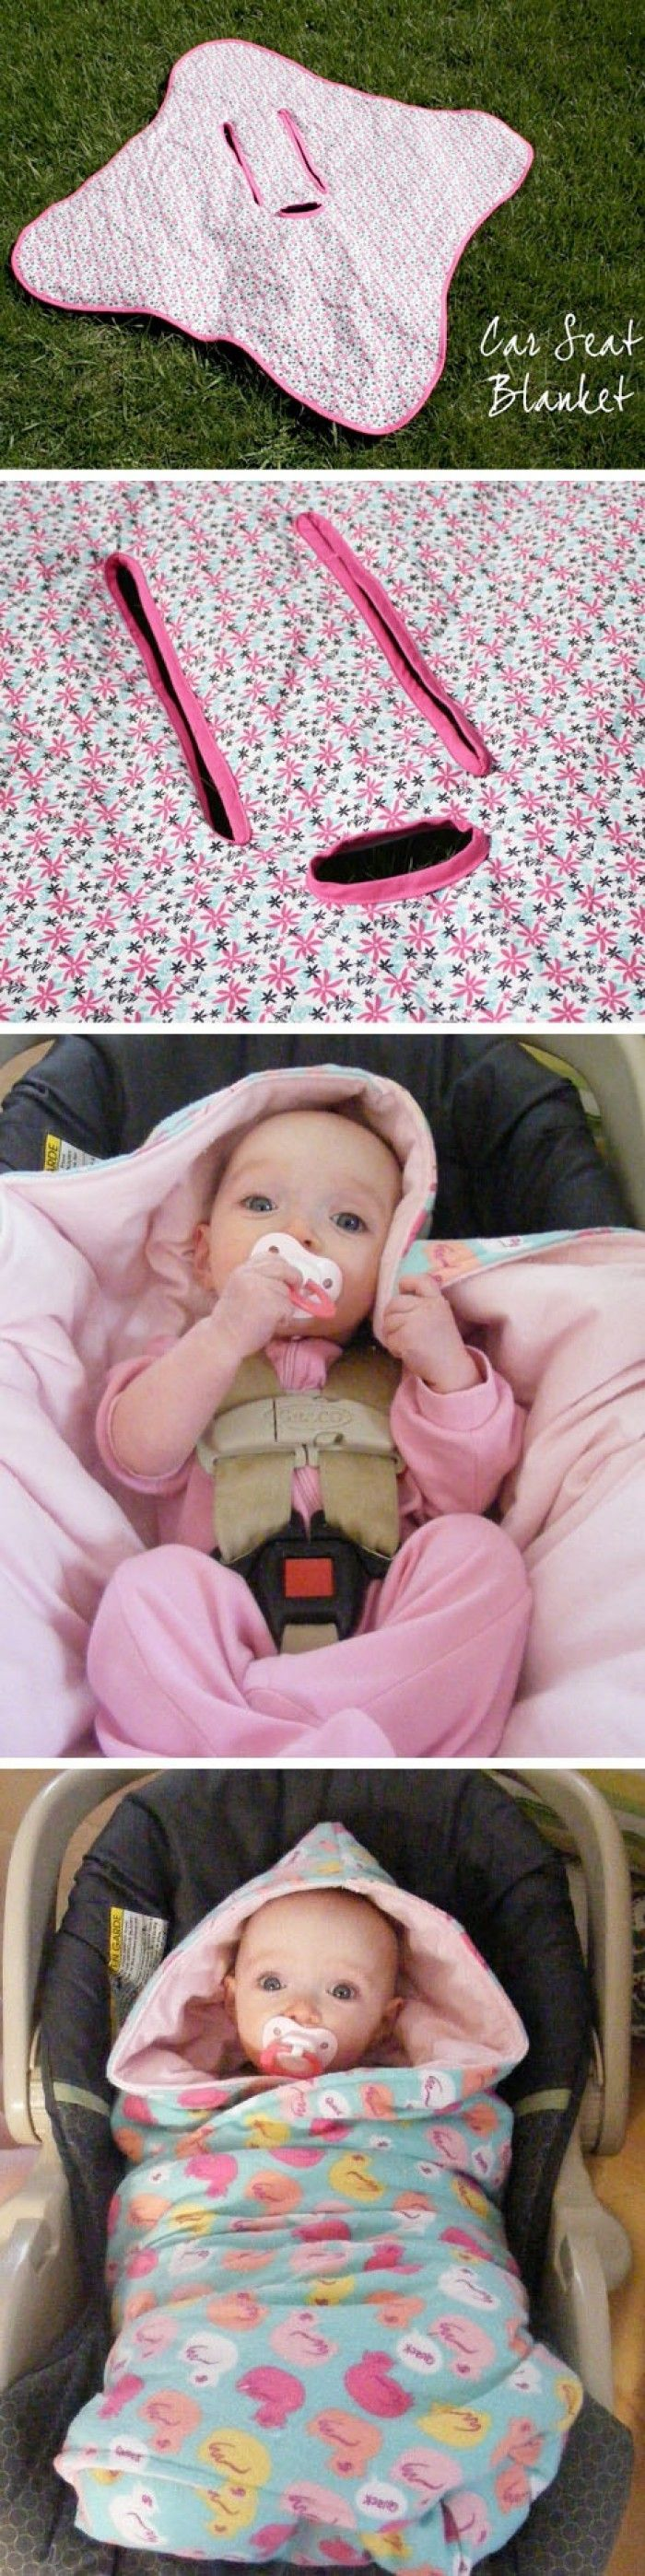 49 best Baby images on Pinterest